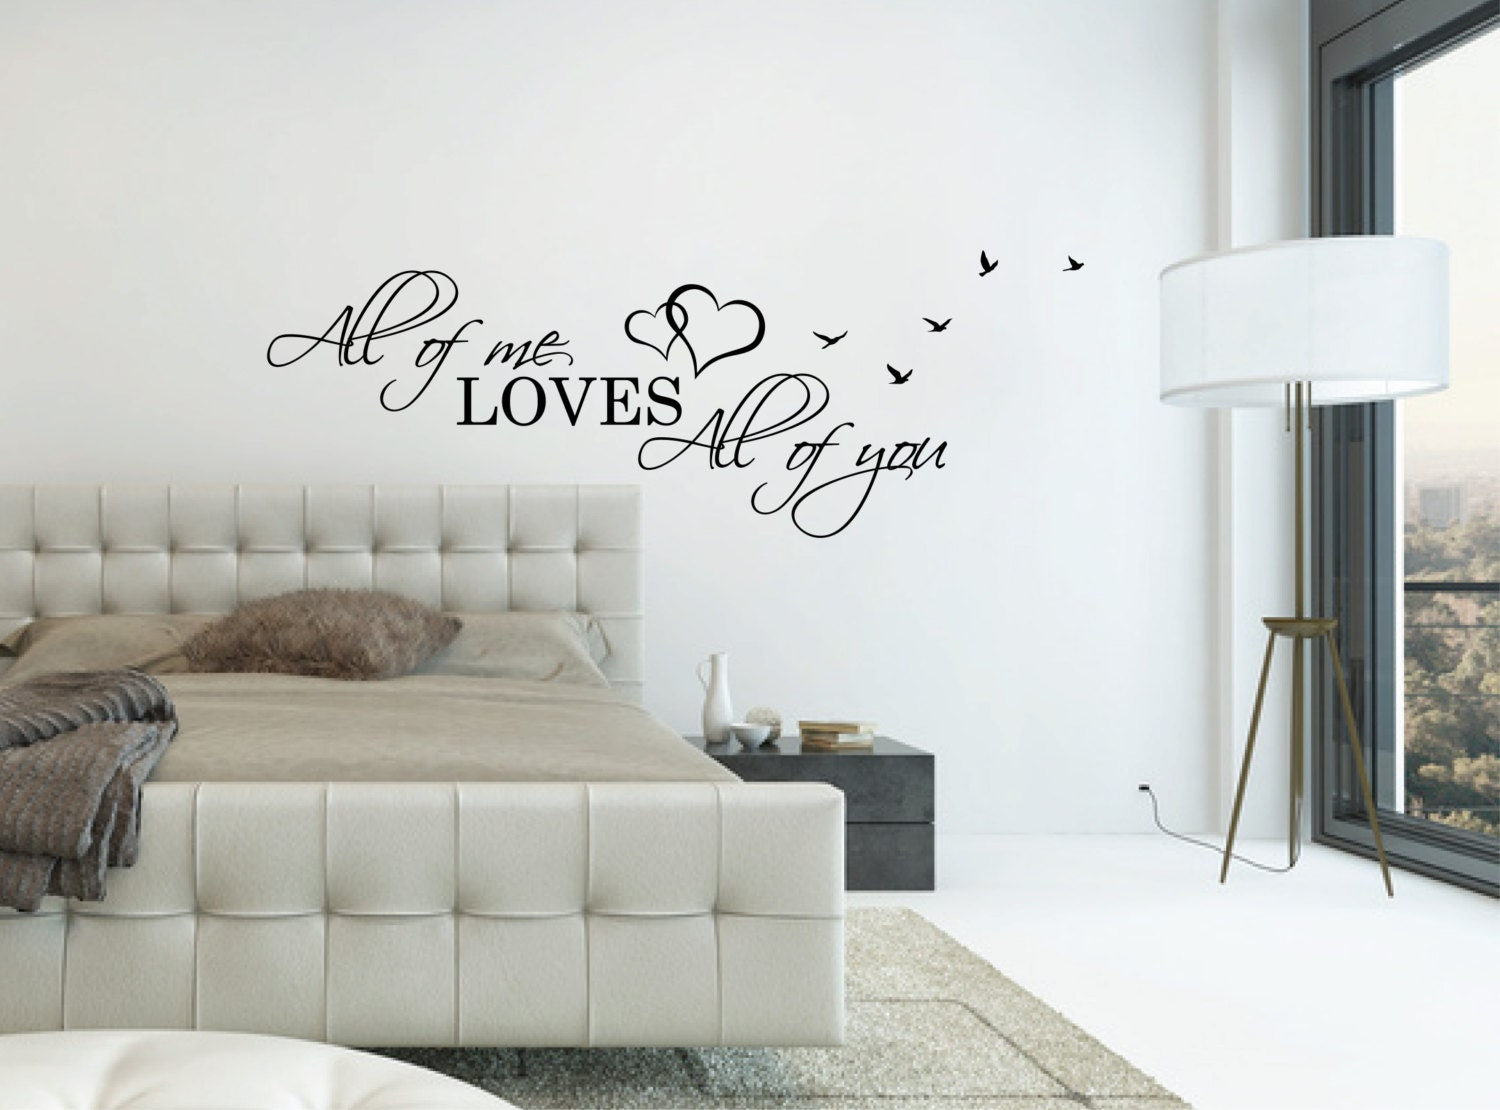 Above bed wall decal quote all of me loves all of you l over - Wall art above bed ...